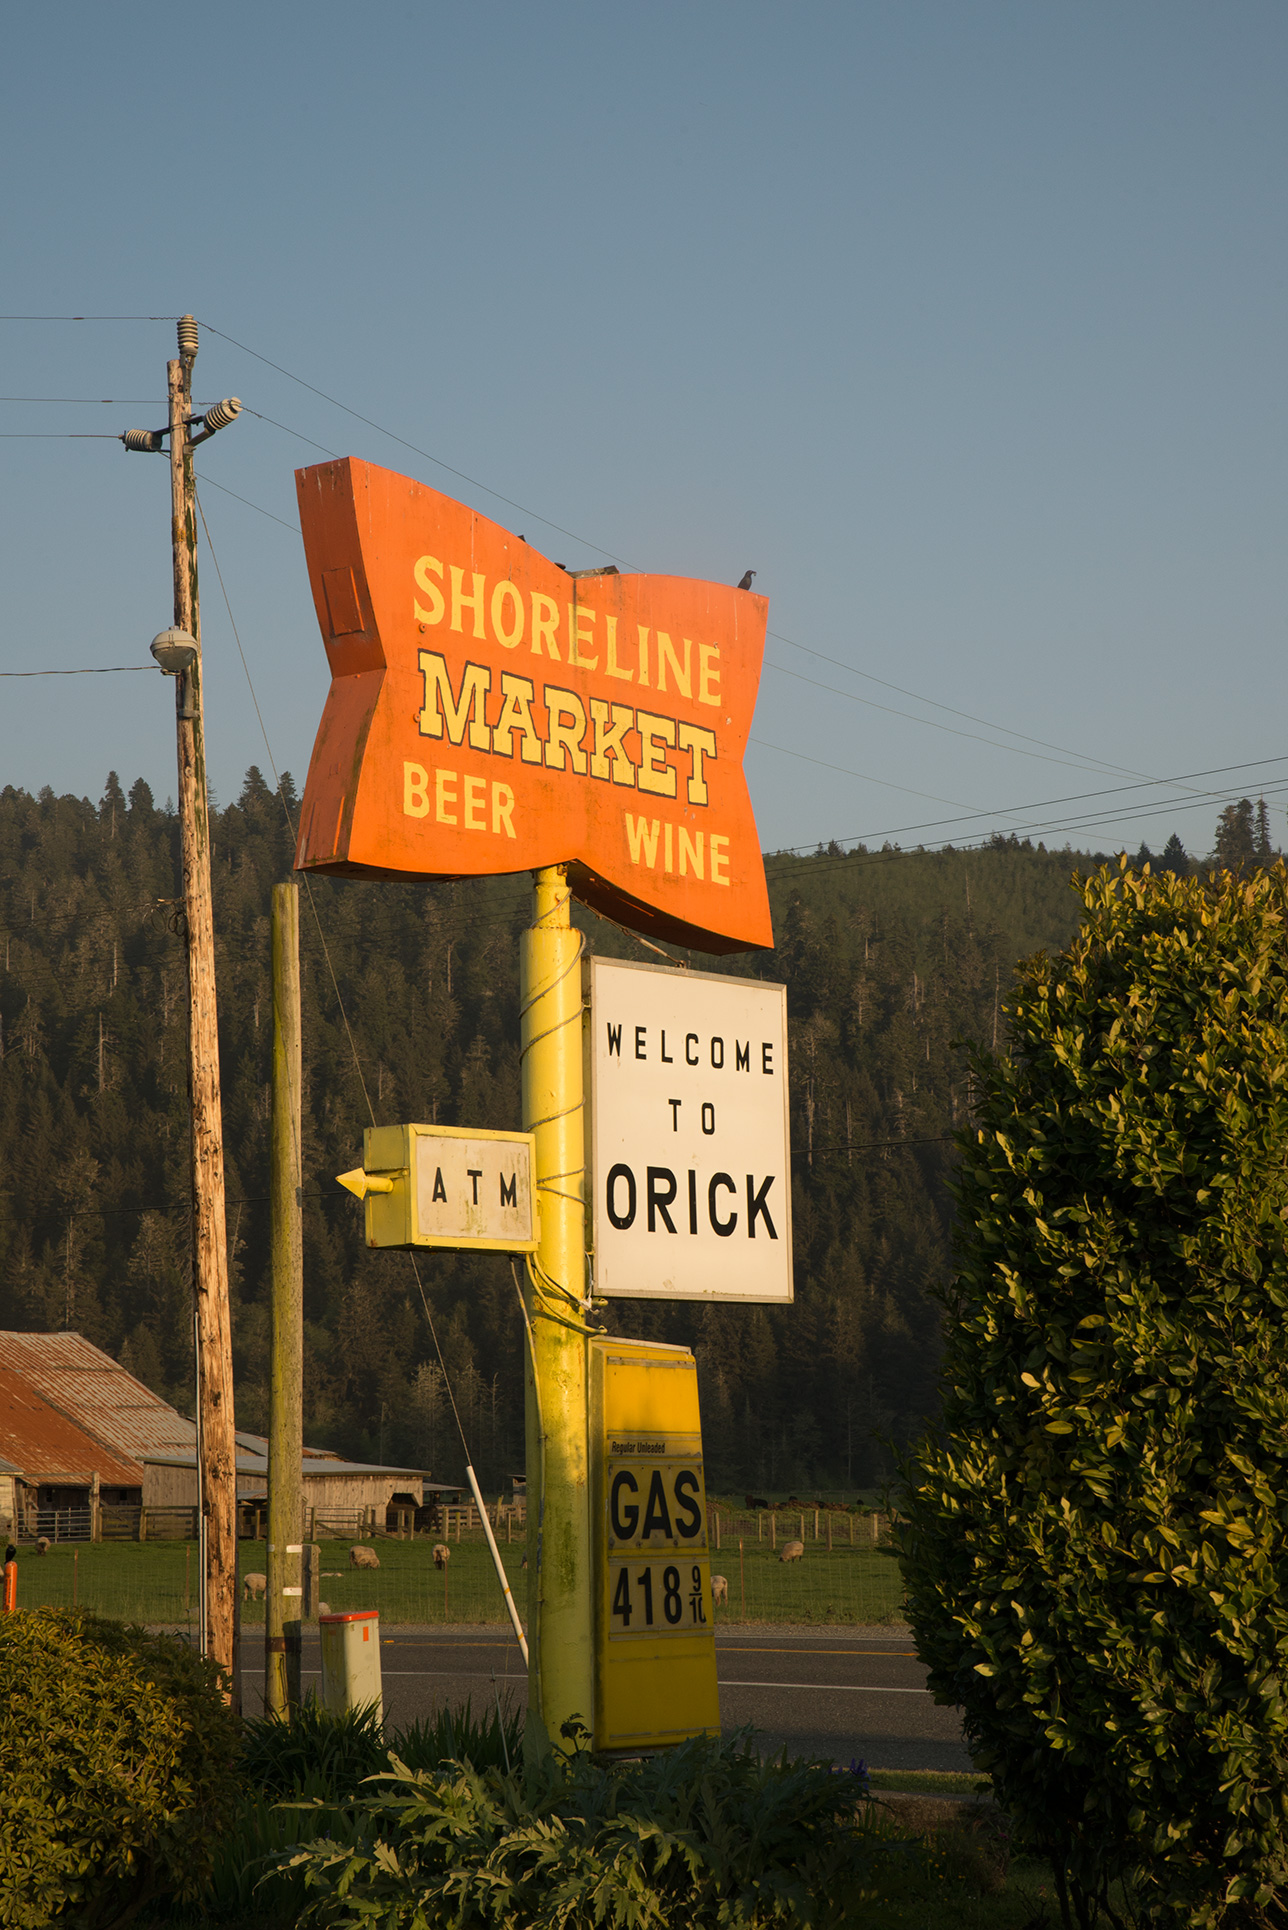 Orick is a small town with few amenities but lots of charm